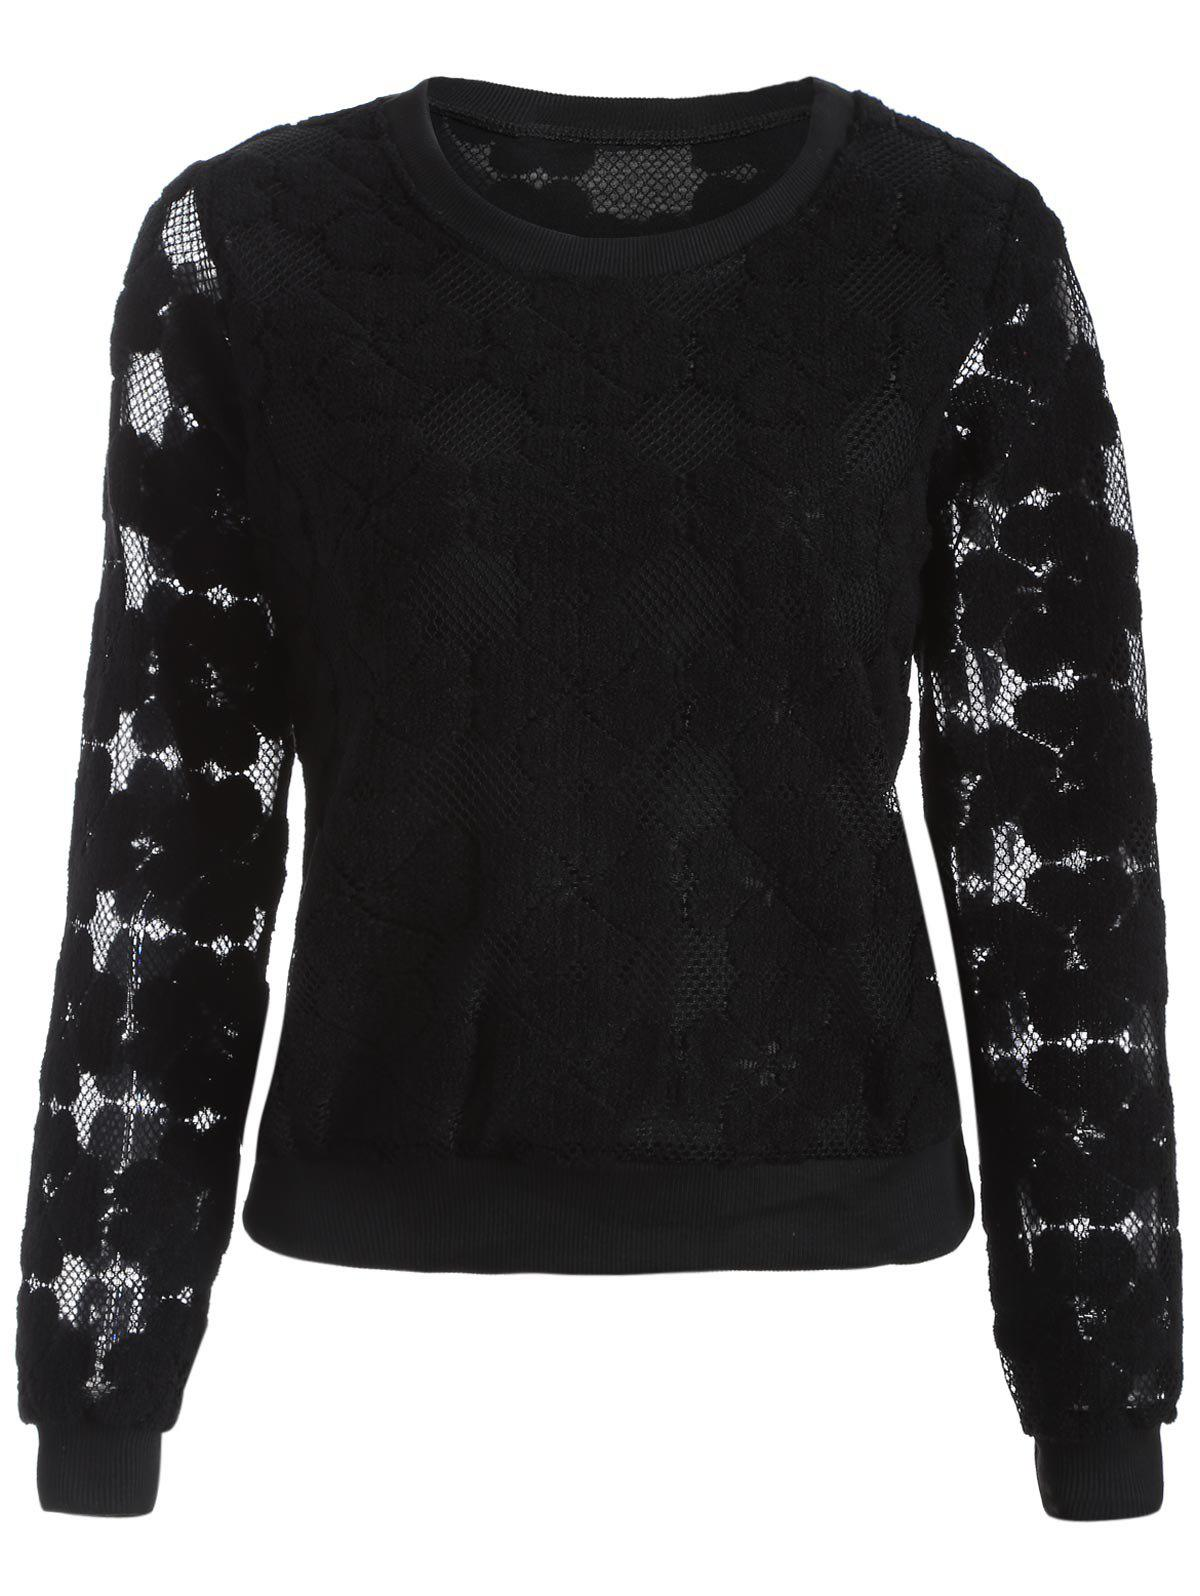 Flocked Mesh Pullover Sweatshirt - BLACK XL